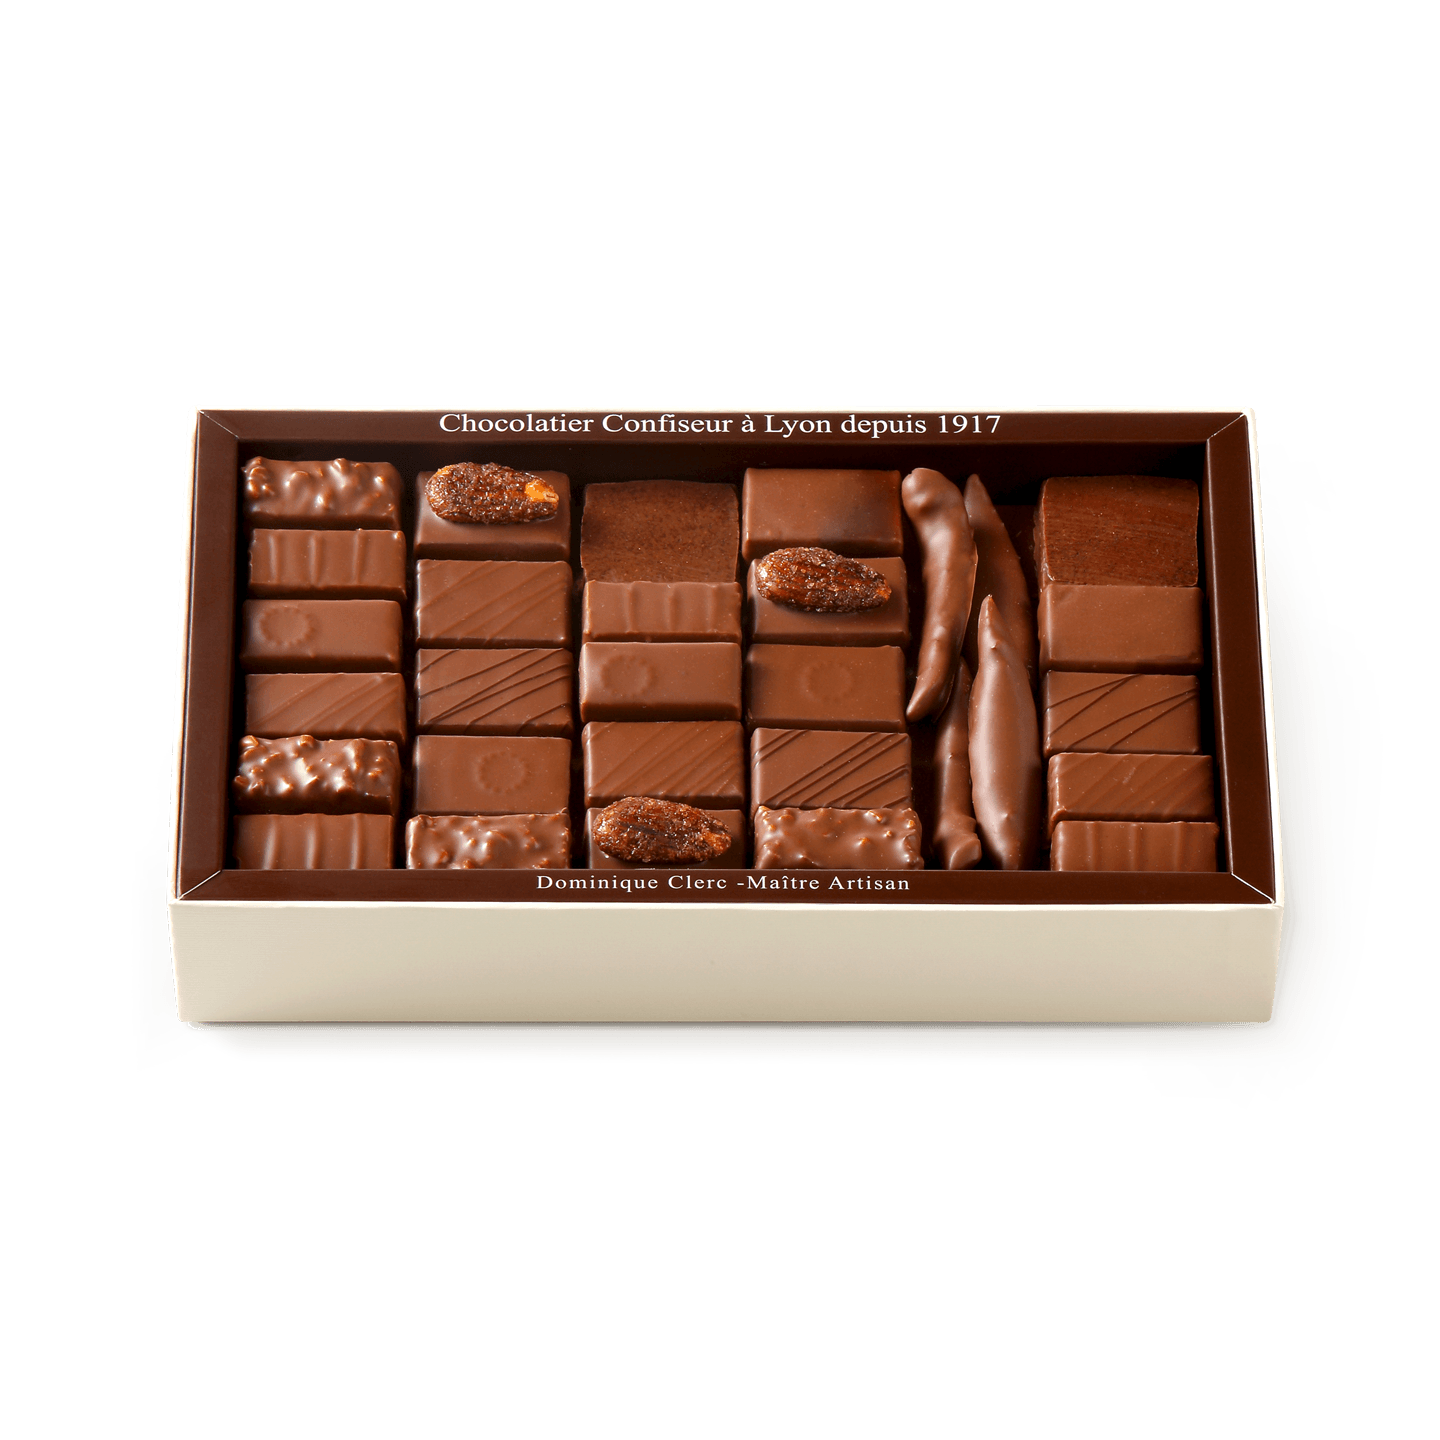 Assortiment de Chocolats au Lait Coffret de 500g